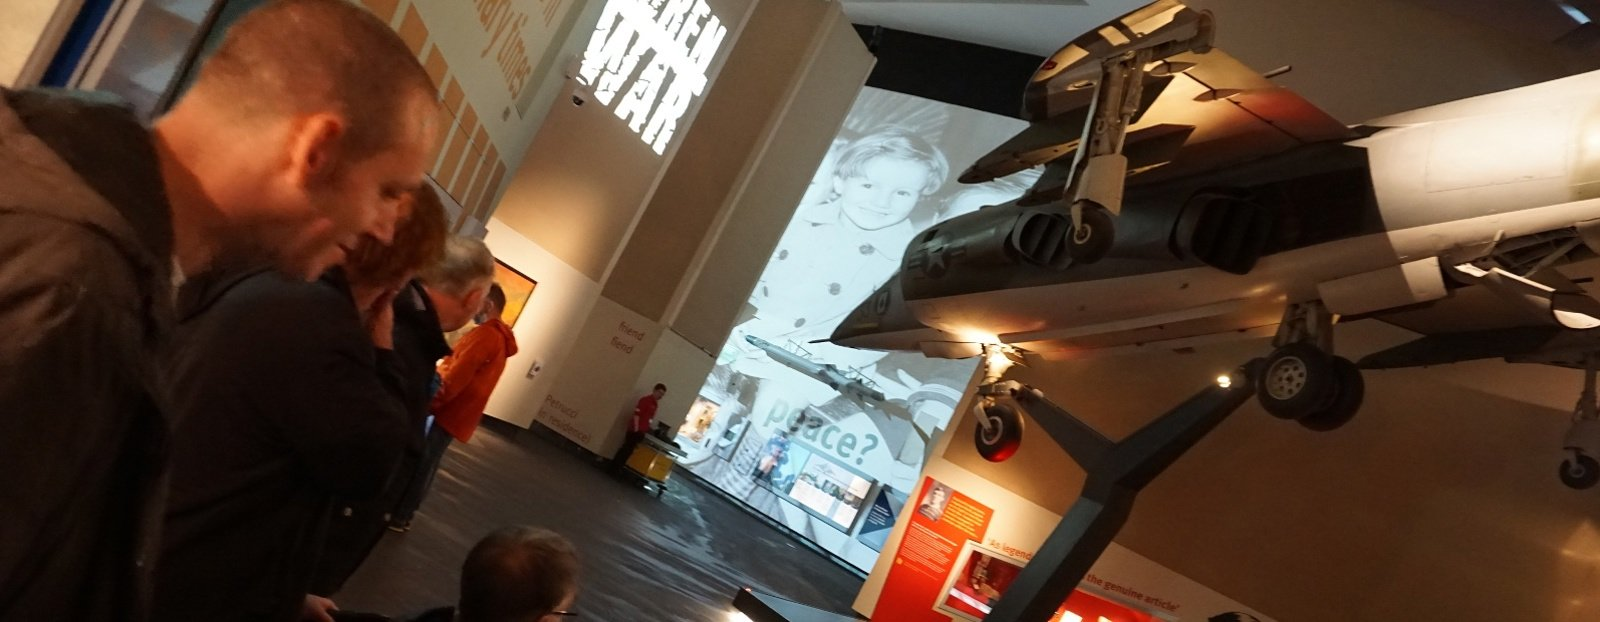 Imperial War Museum Visit by David Owen